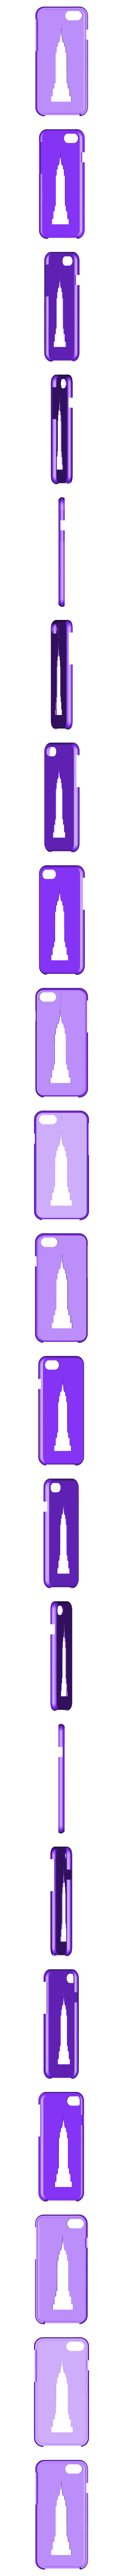 Iphone7_Empire.stl Download STL file Iphone 7 Empire state building cover • 3D print template, Arge89